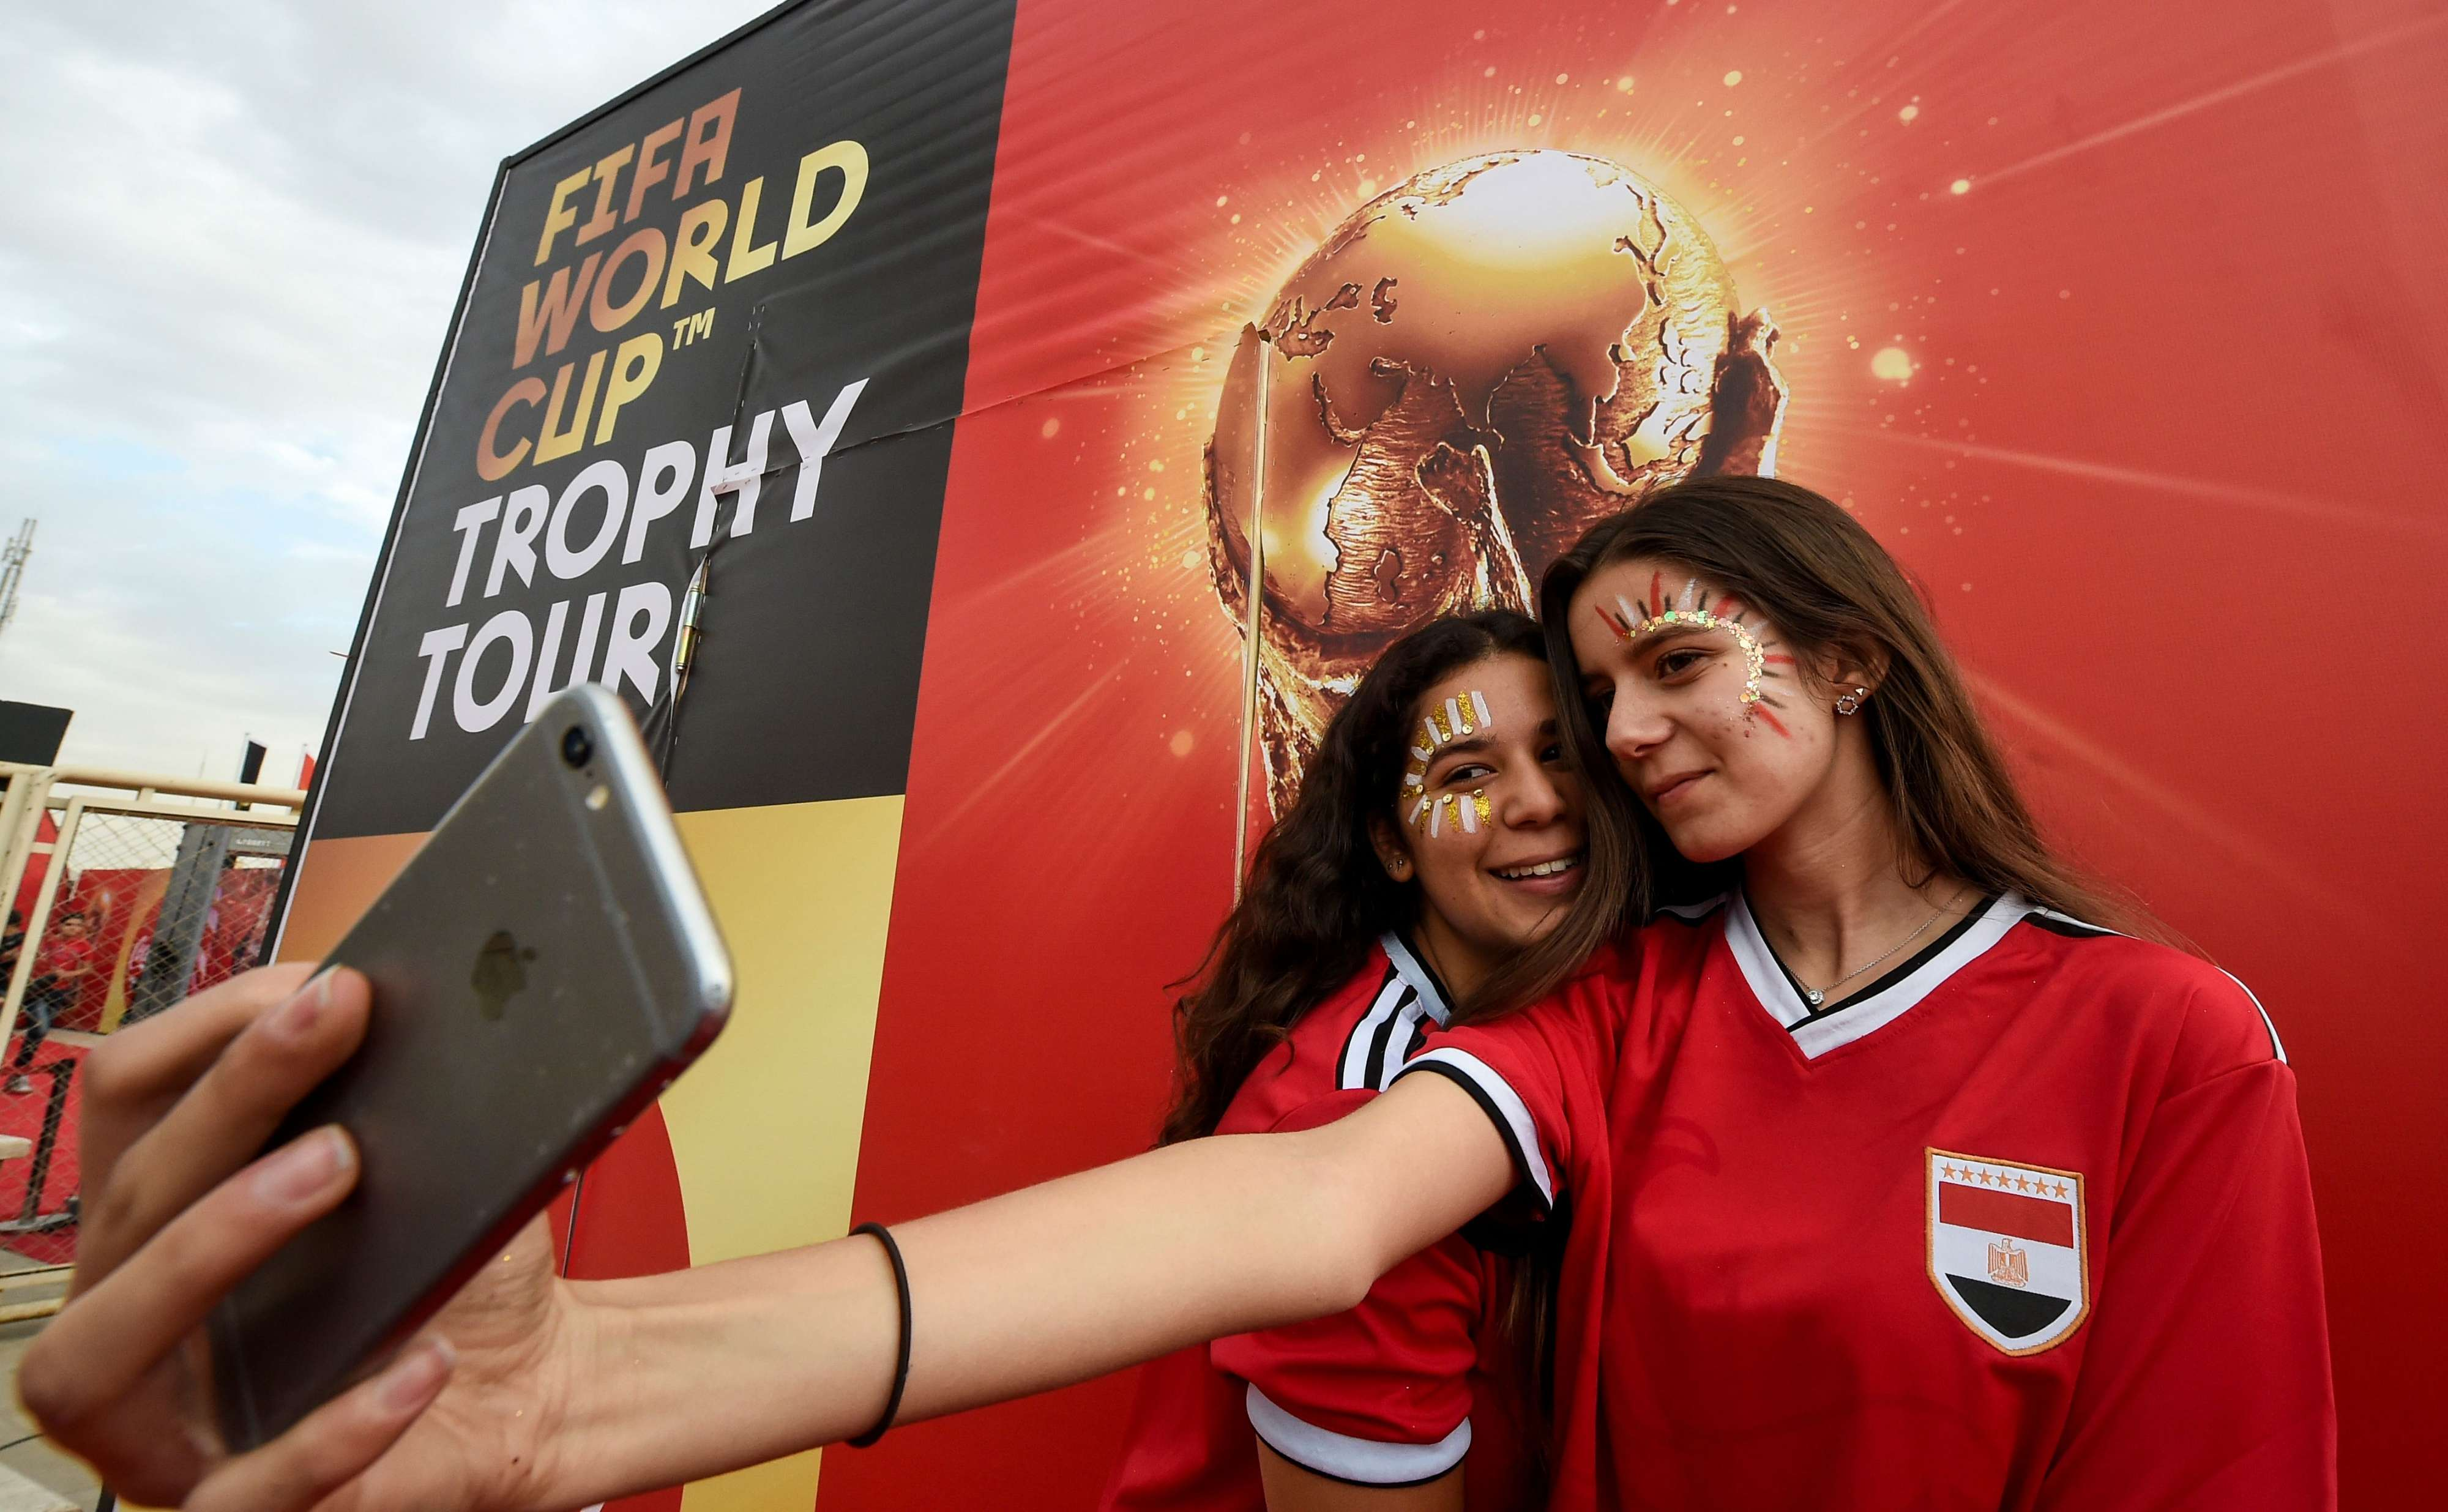 Female Egyptian football fans pose for a selfie during a FIFA World Cup Trophy tour event in Cairo, last March. (AFP)